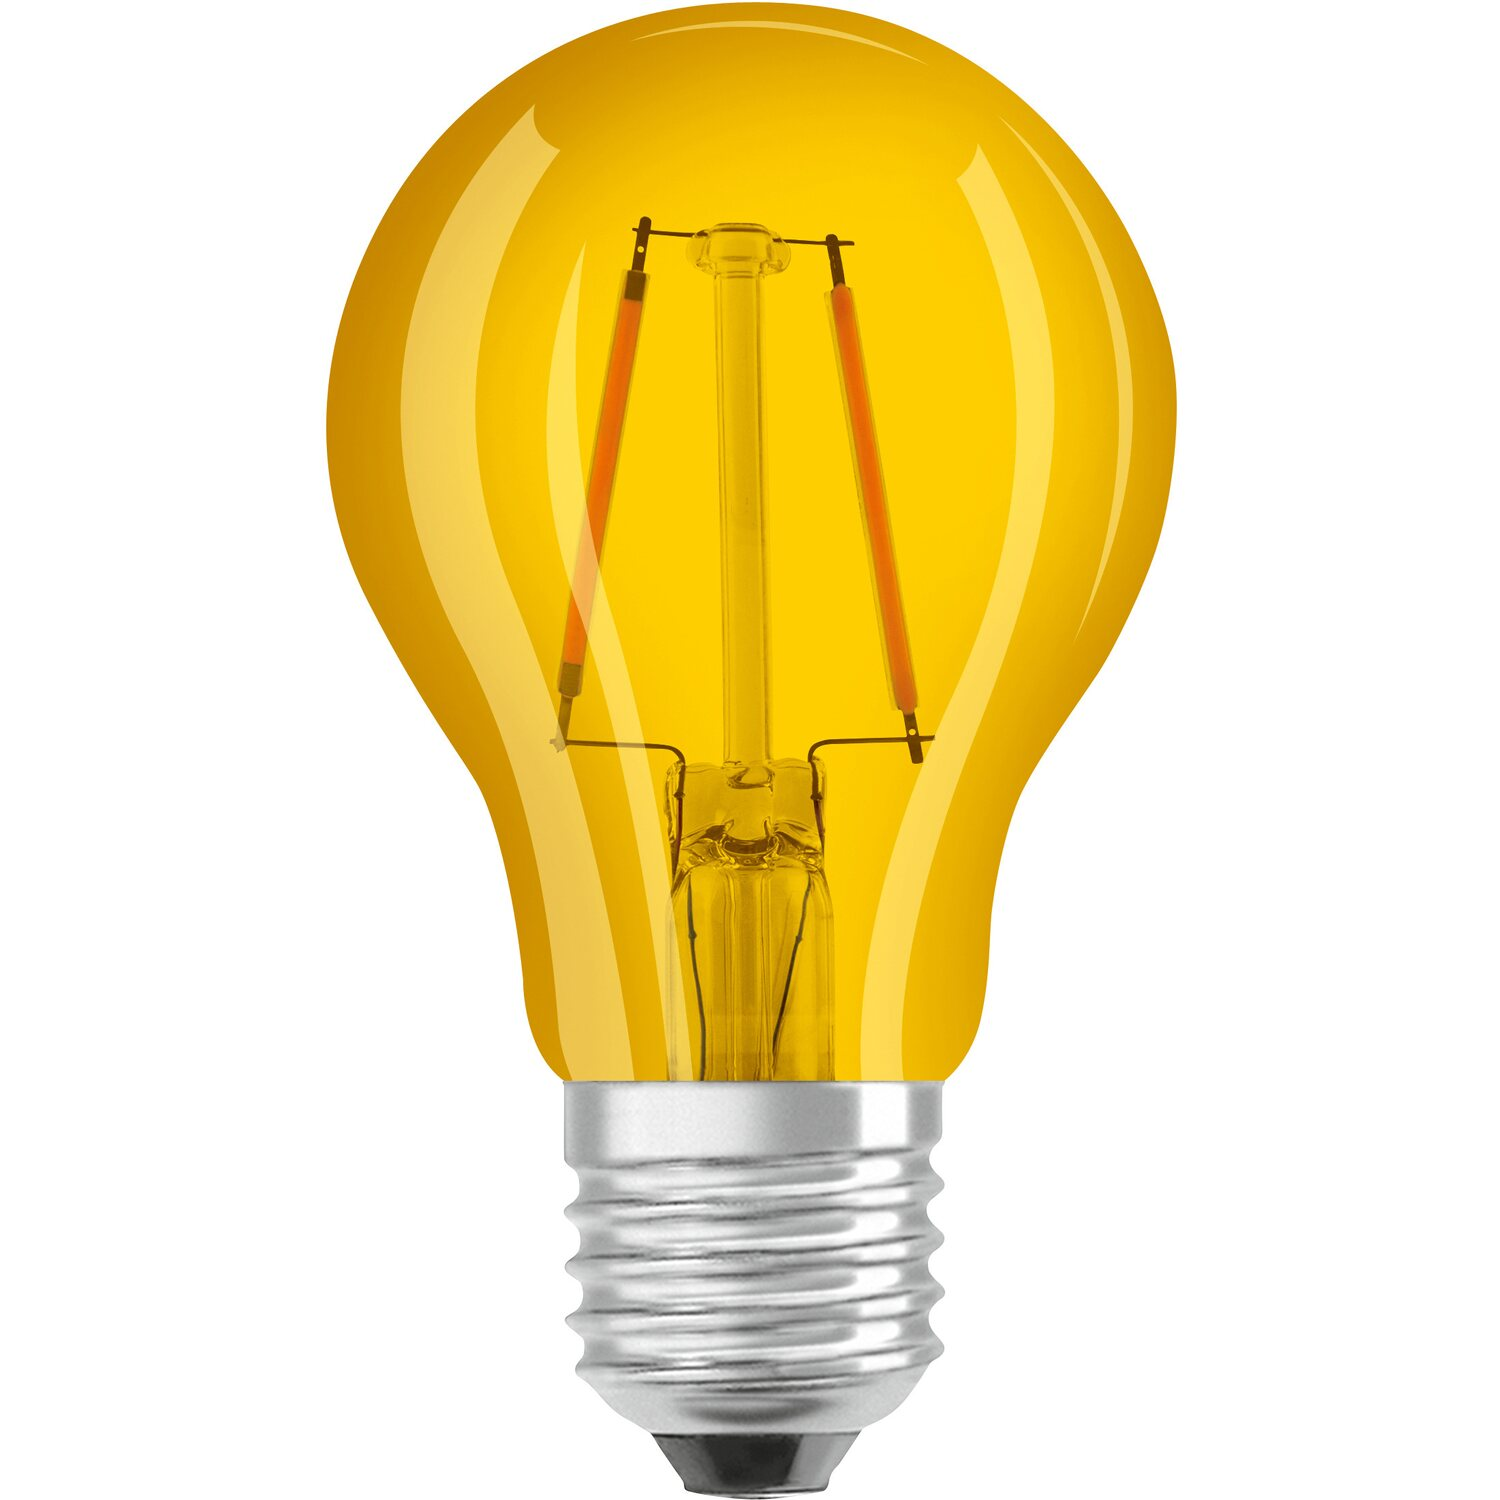 Osram lampadina led decor goccia e27 giallo acquista da obi for Lampadine a led per casa prezzi